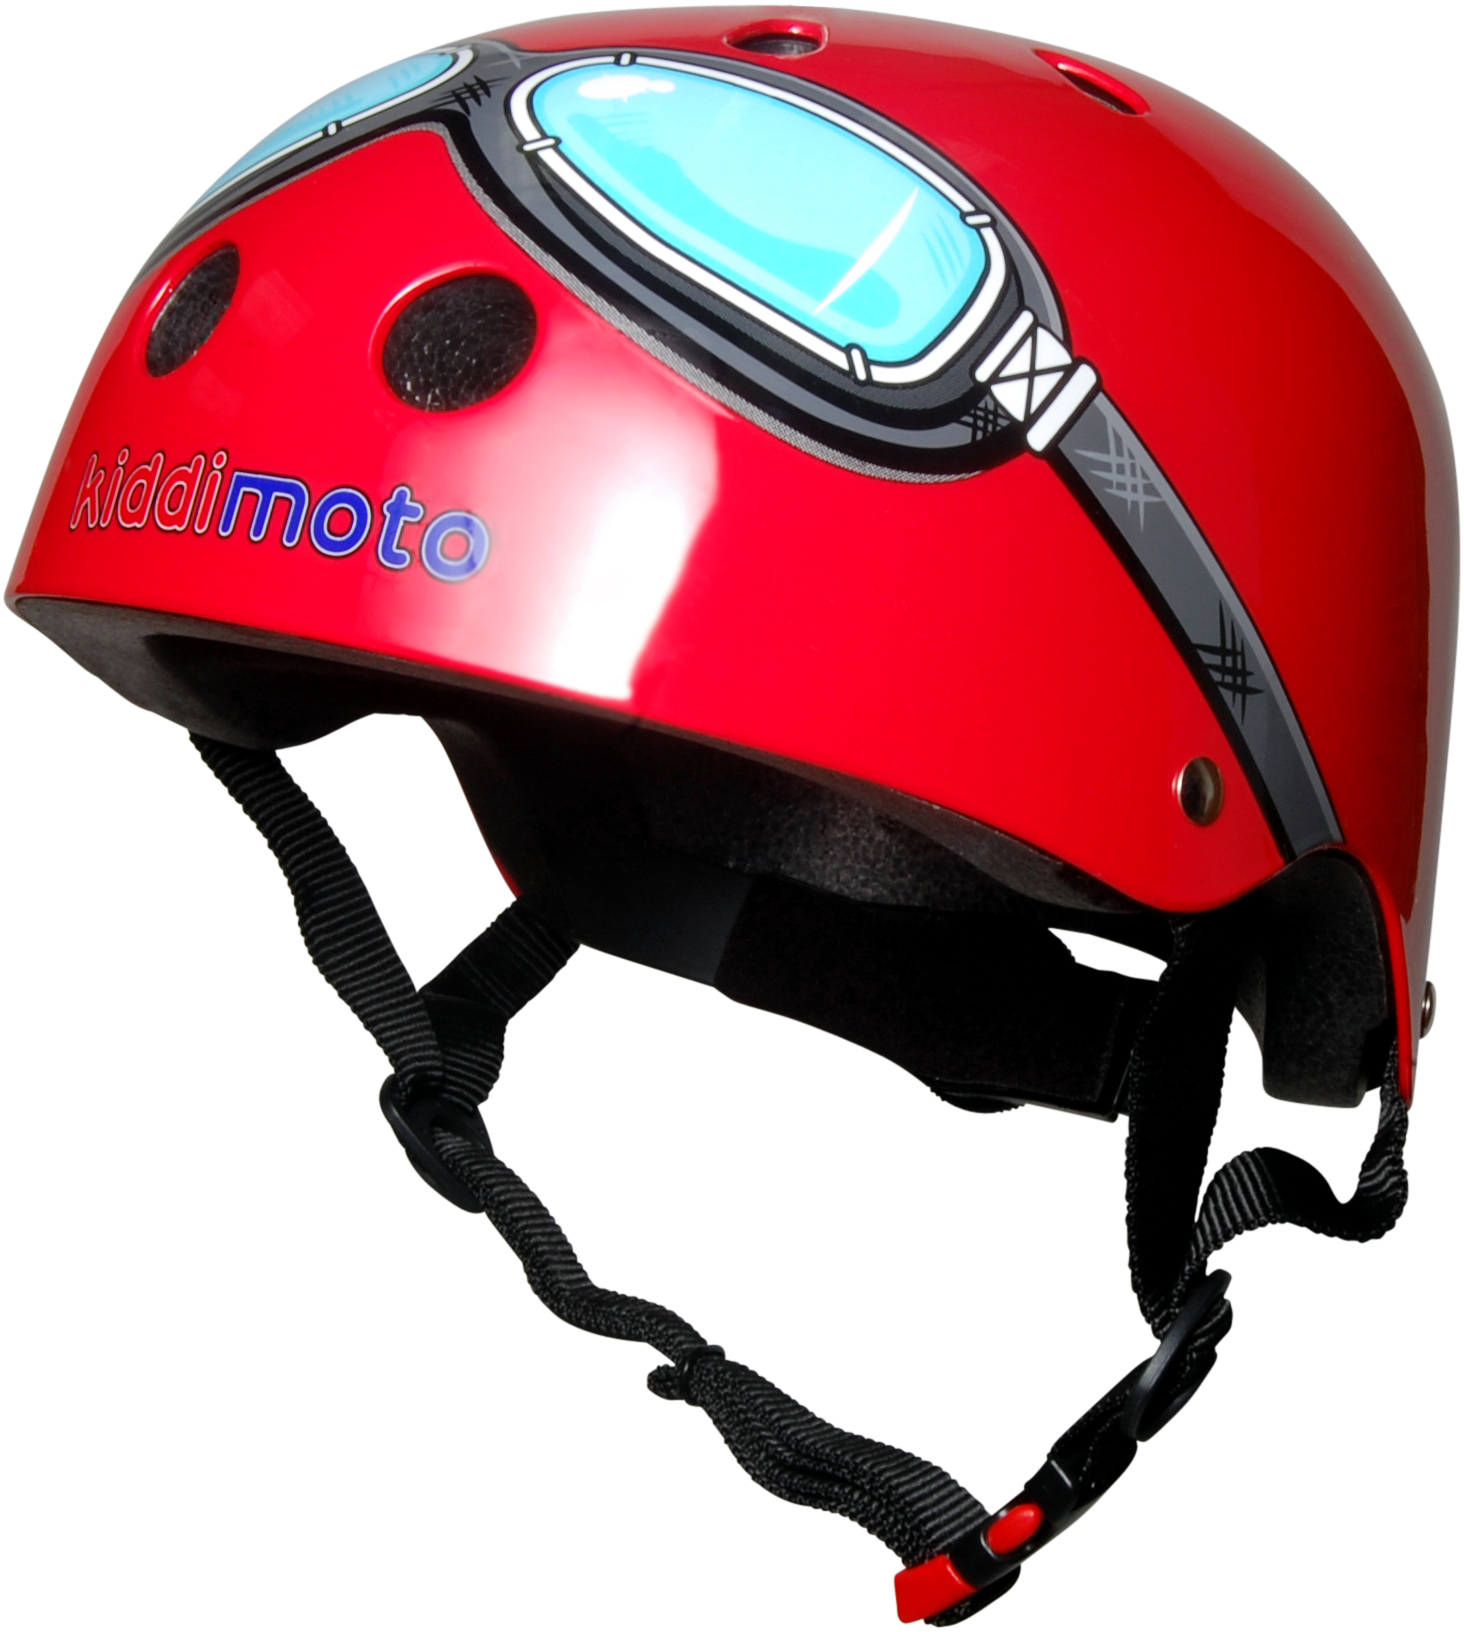 Casco Infantil Kiddimoto Red Goggle